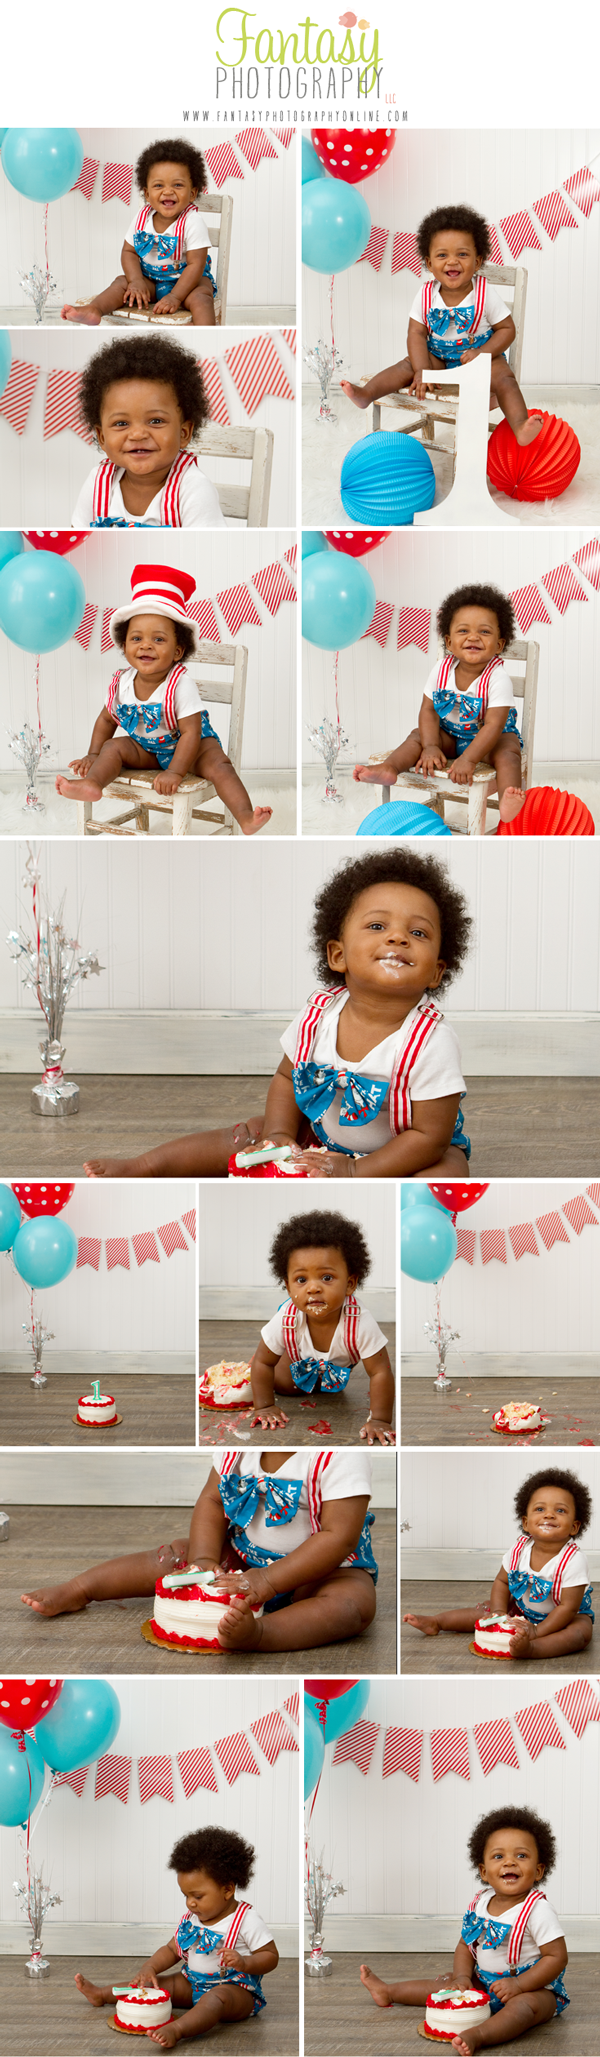 Winston Salem Cake Smash Photographer | Baby Photographers in the Triad